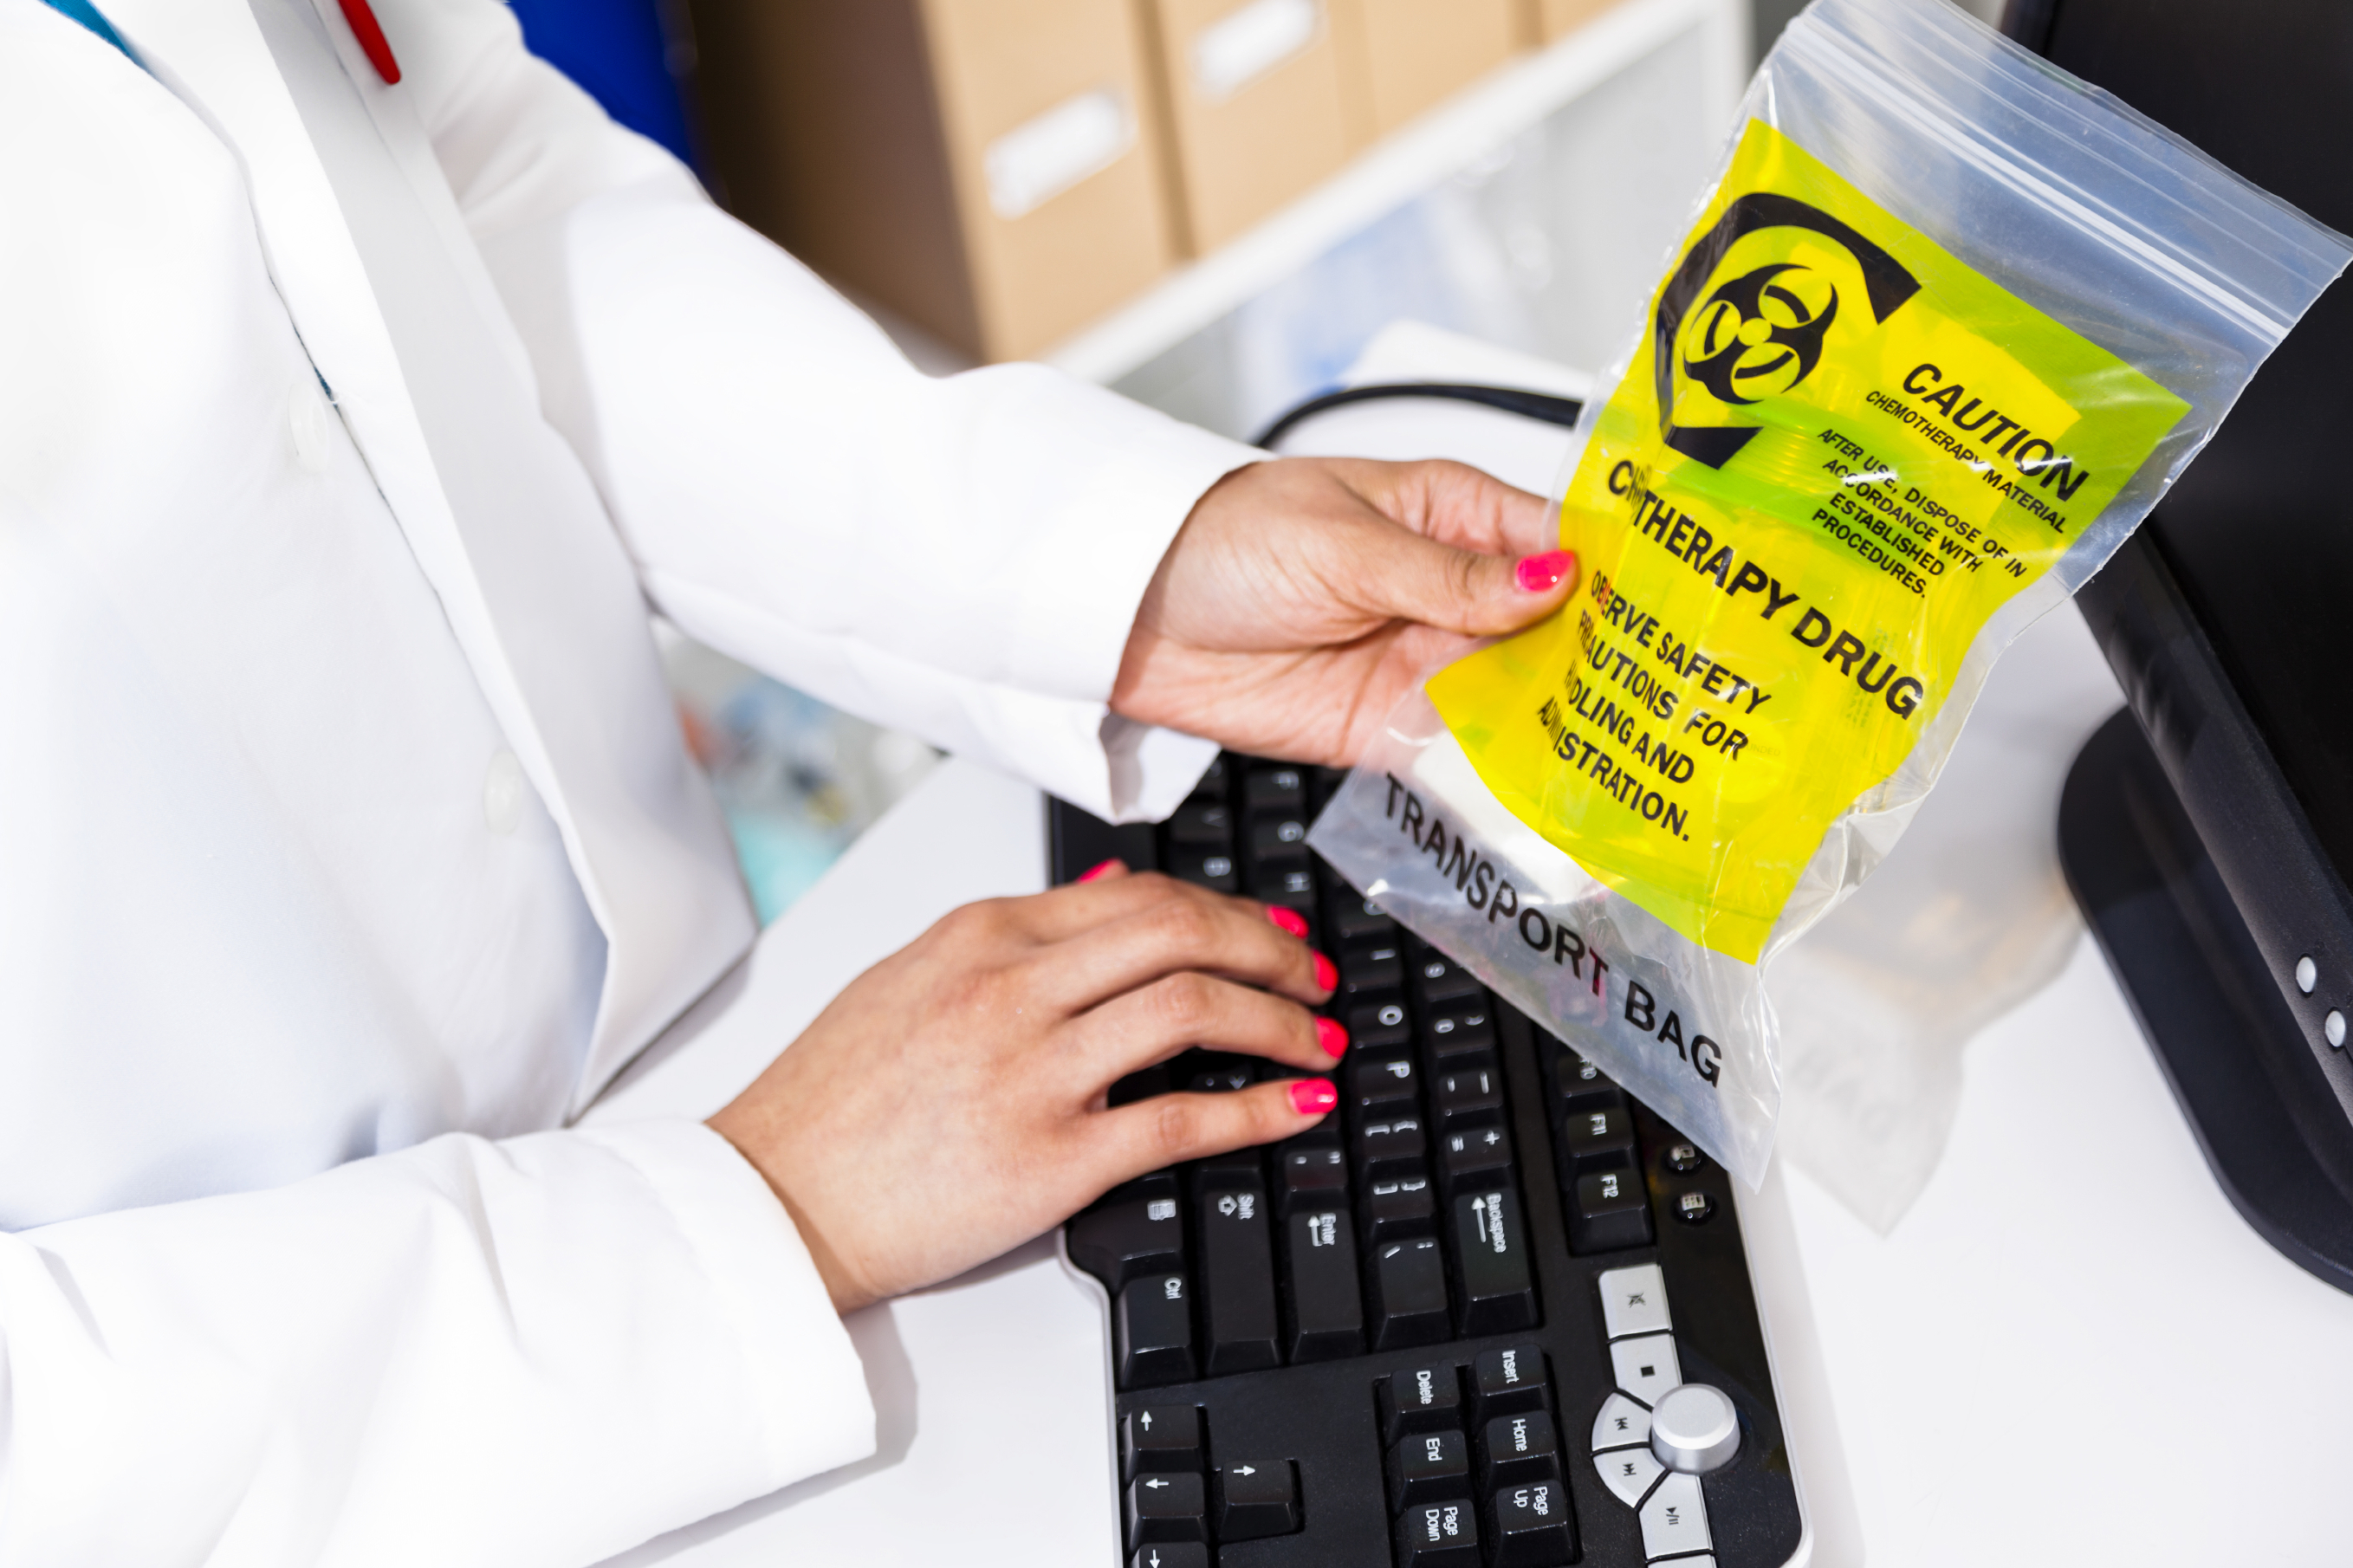 Chemotherapy drugs are killing nurses scrubs the leading chemotherapy drugs are killing nurses scrubs the leading lifestyle nursing magazine featuring inspirational and informational nursing articles xflitez Gallery